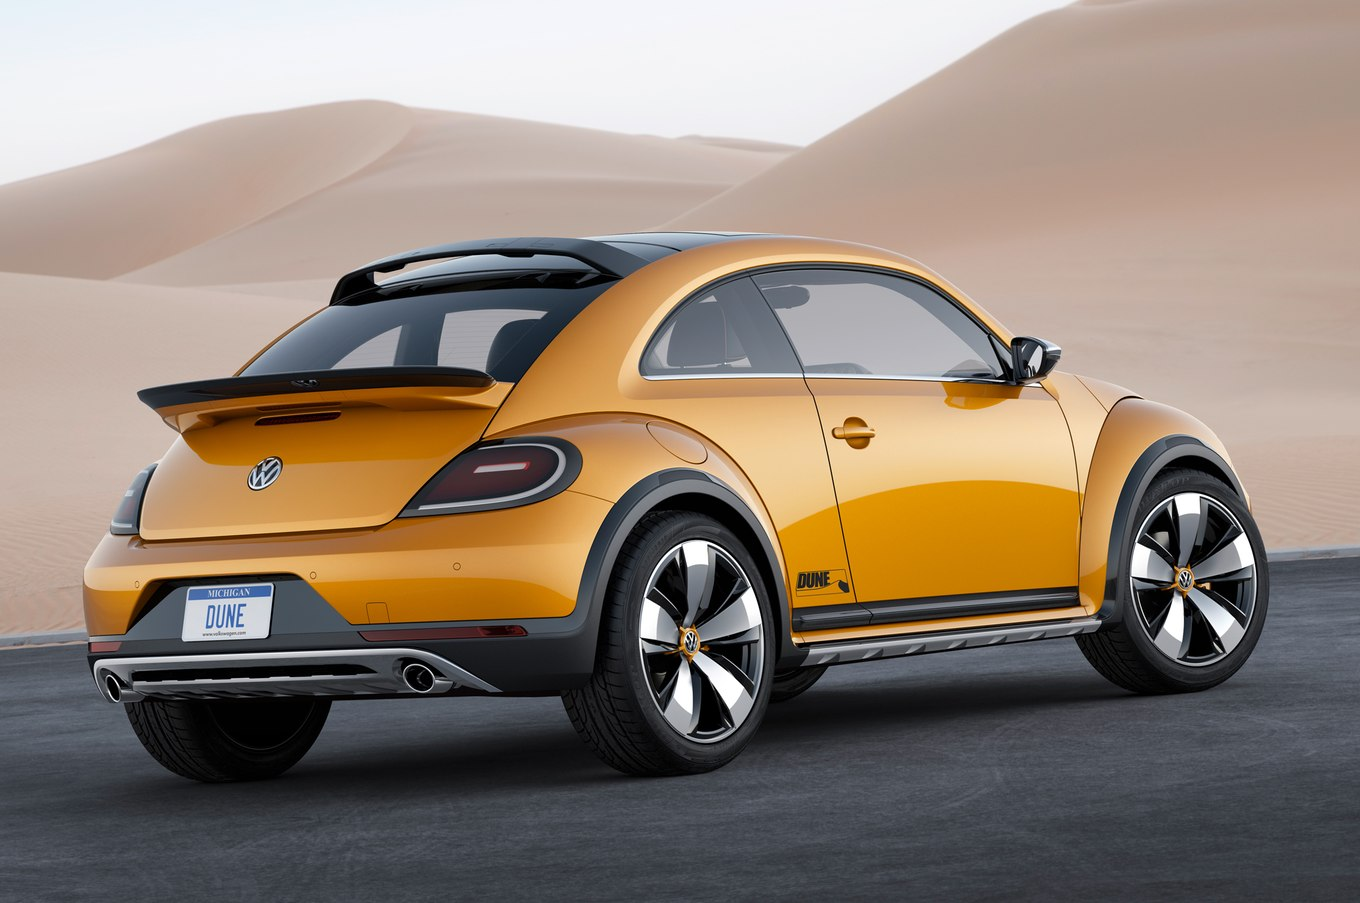 Volkswagen dune photo - 1